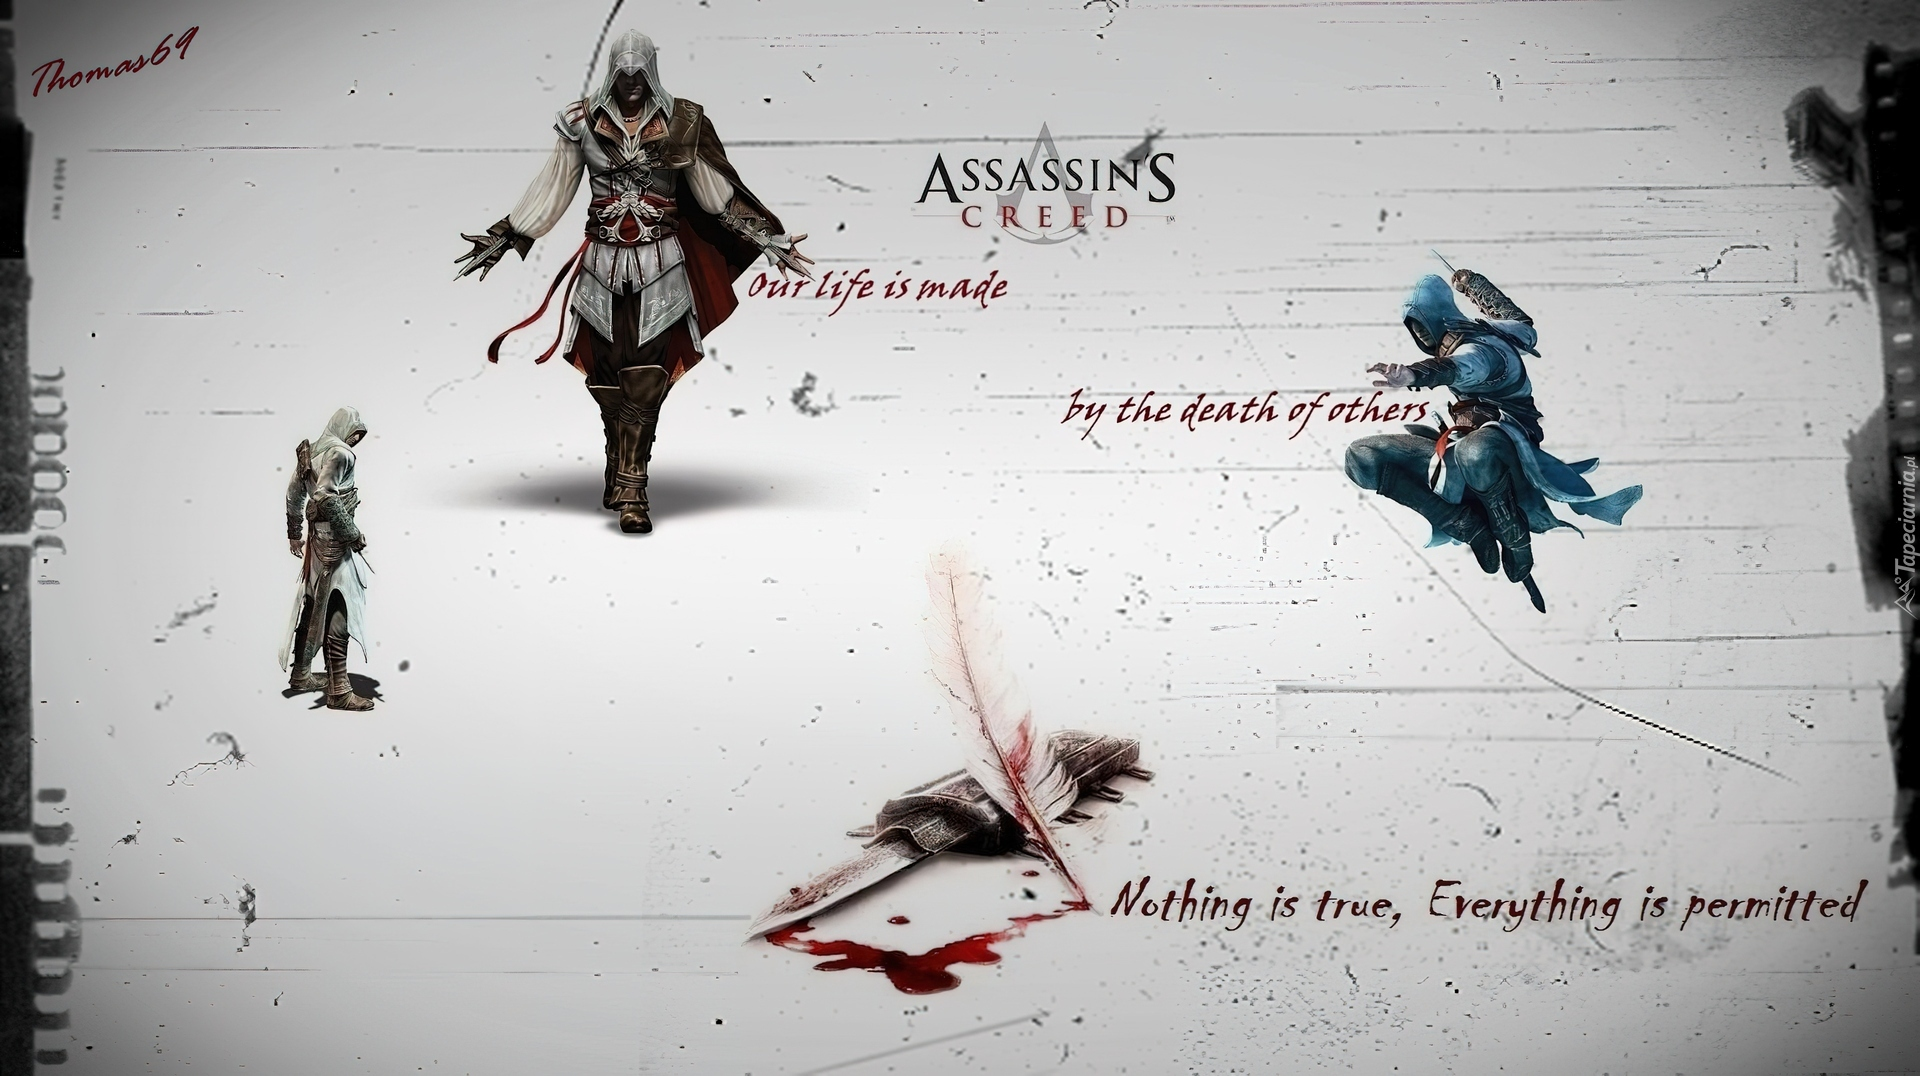 Assassins Creed, Sztylet, Krew